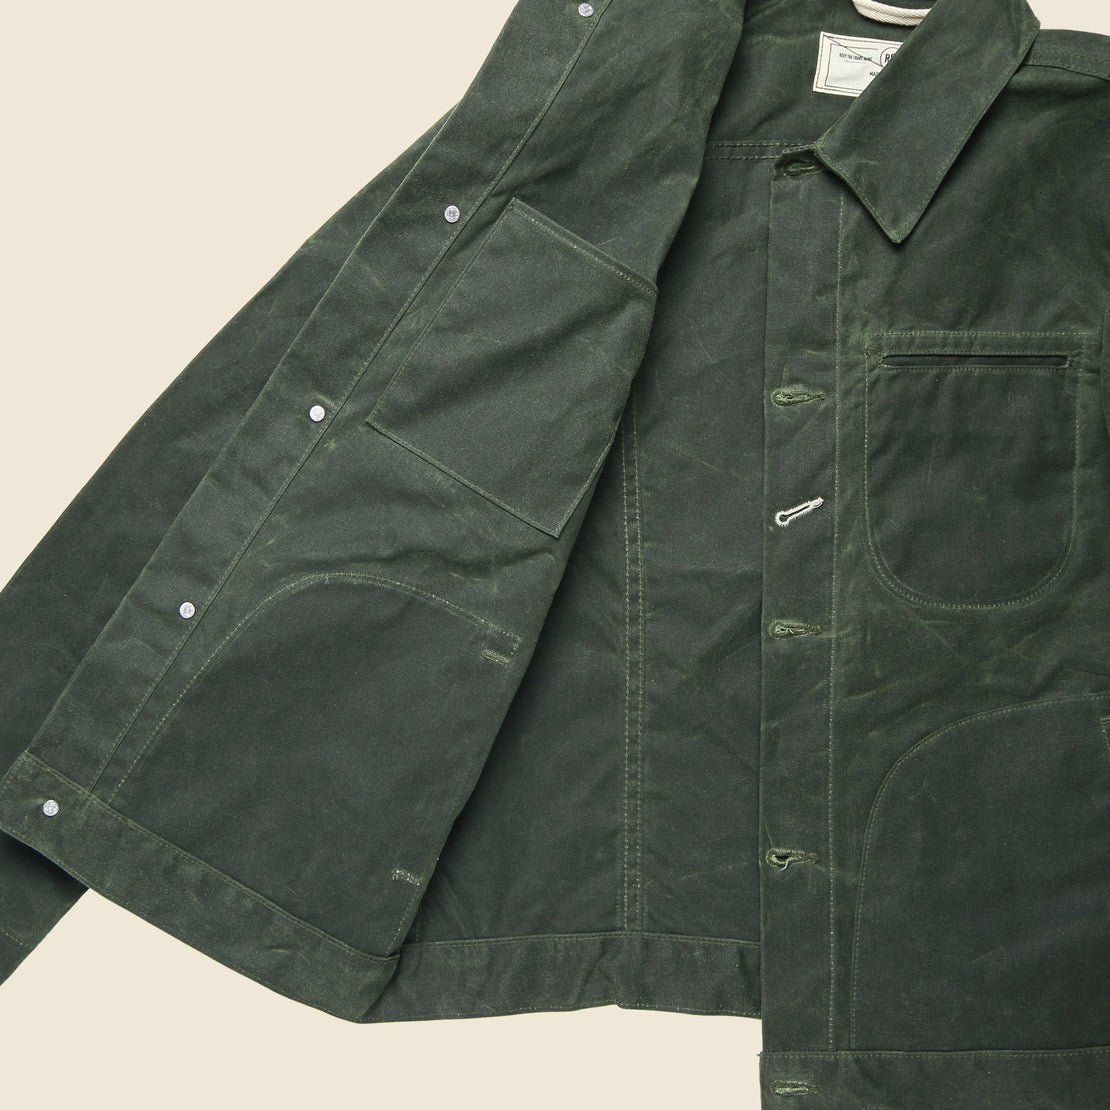 Supply Jacket - Waxed Olive Ridgeline